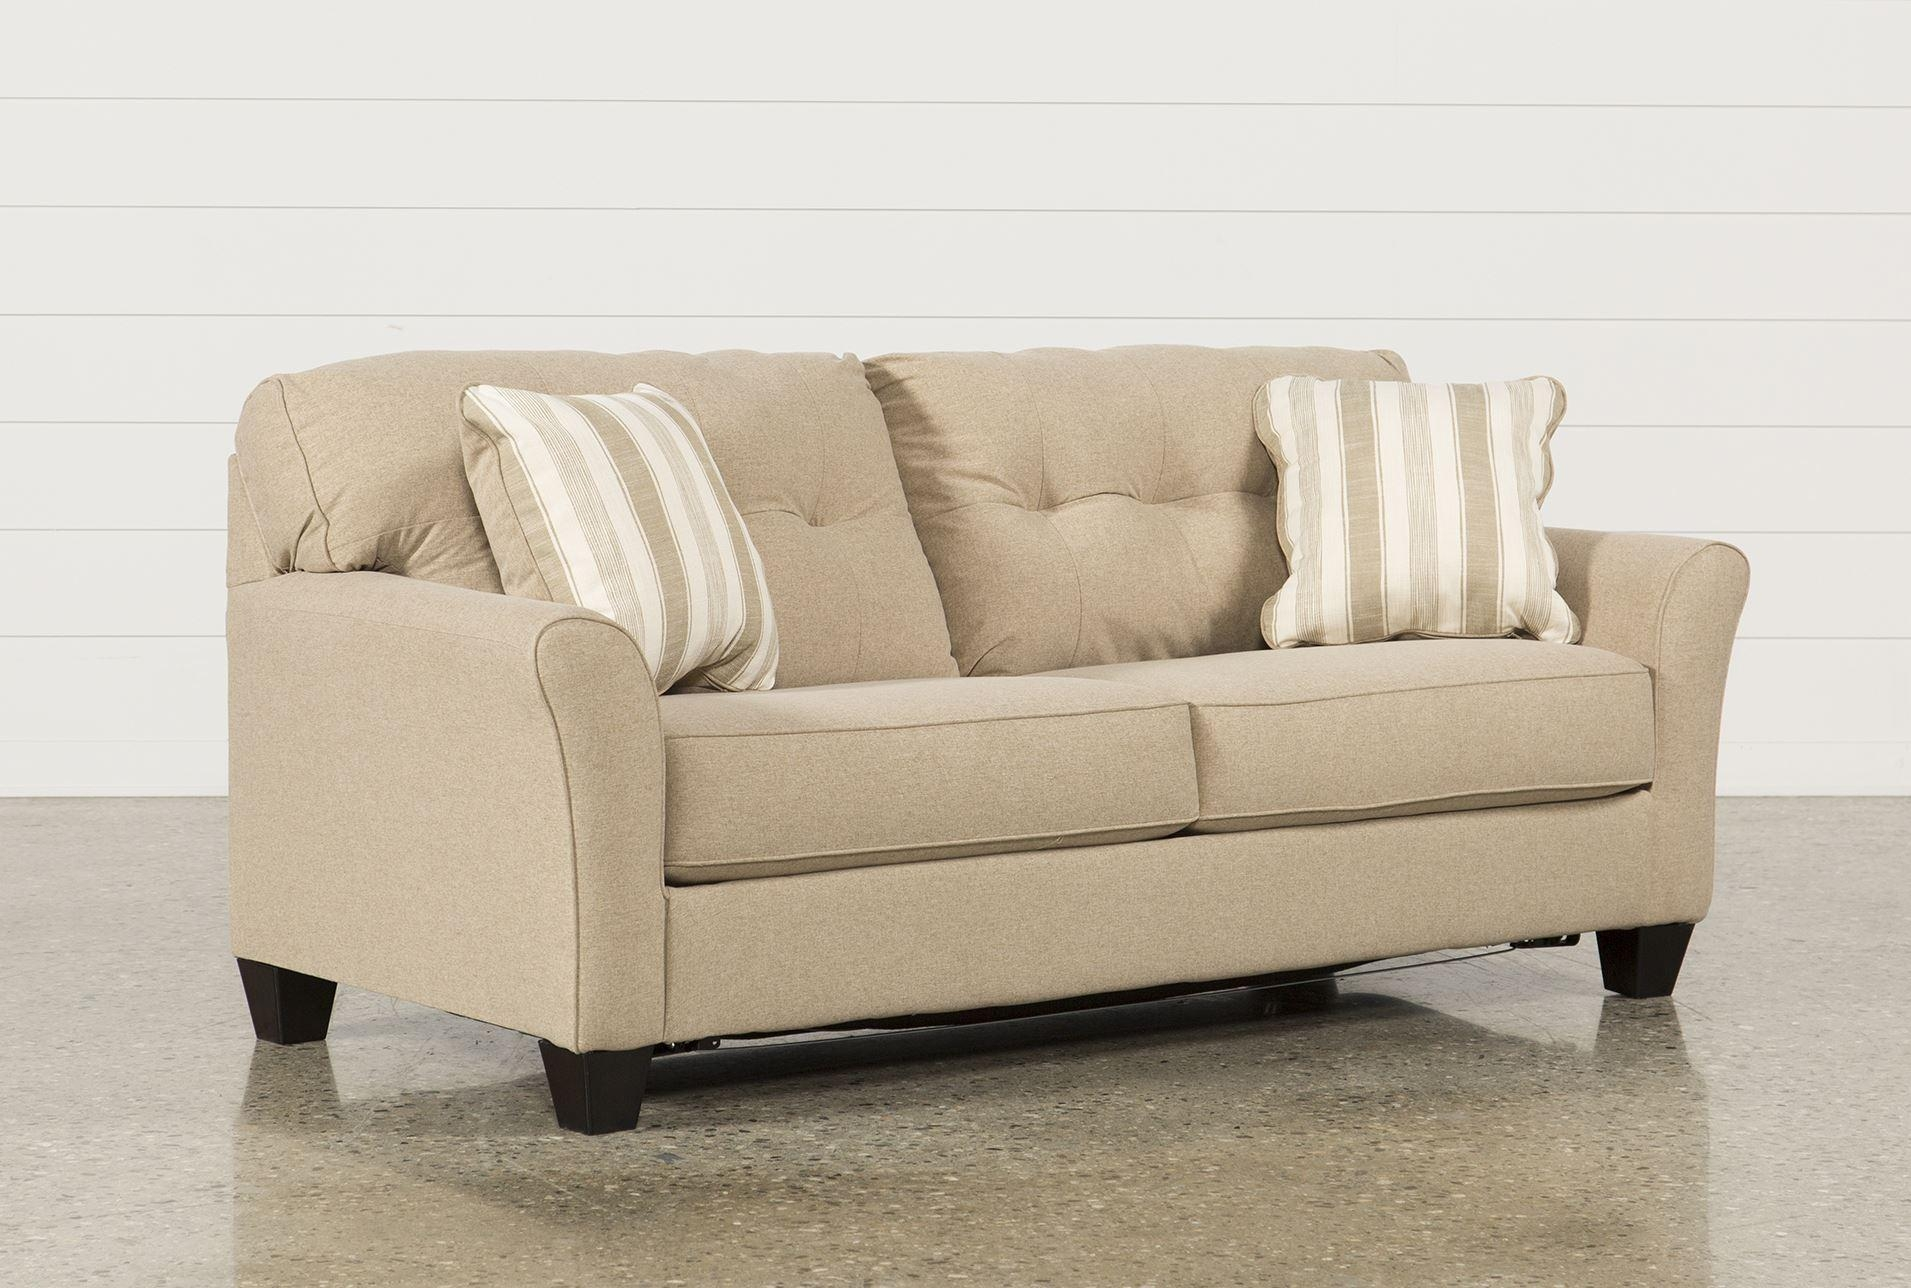 Elegant Sleeper Sofa Living Spaces 13 For Pier One Sleeper Sofa Inside Pier One Sleeper Sofas (Image 7 of 20)